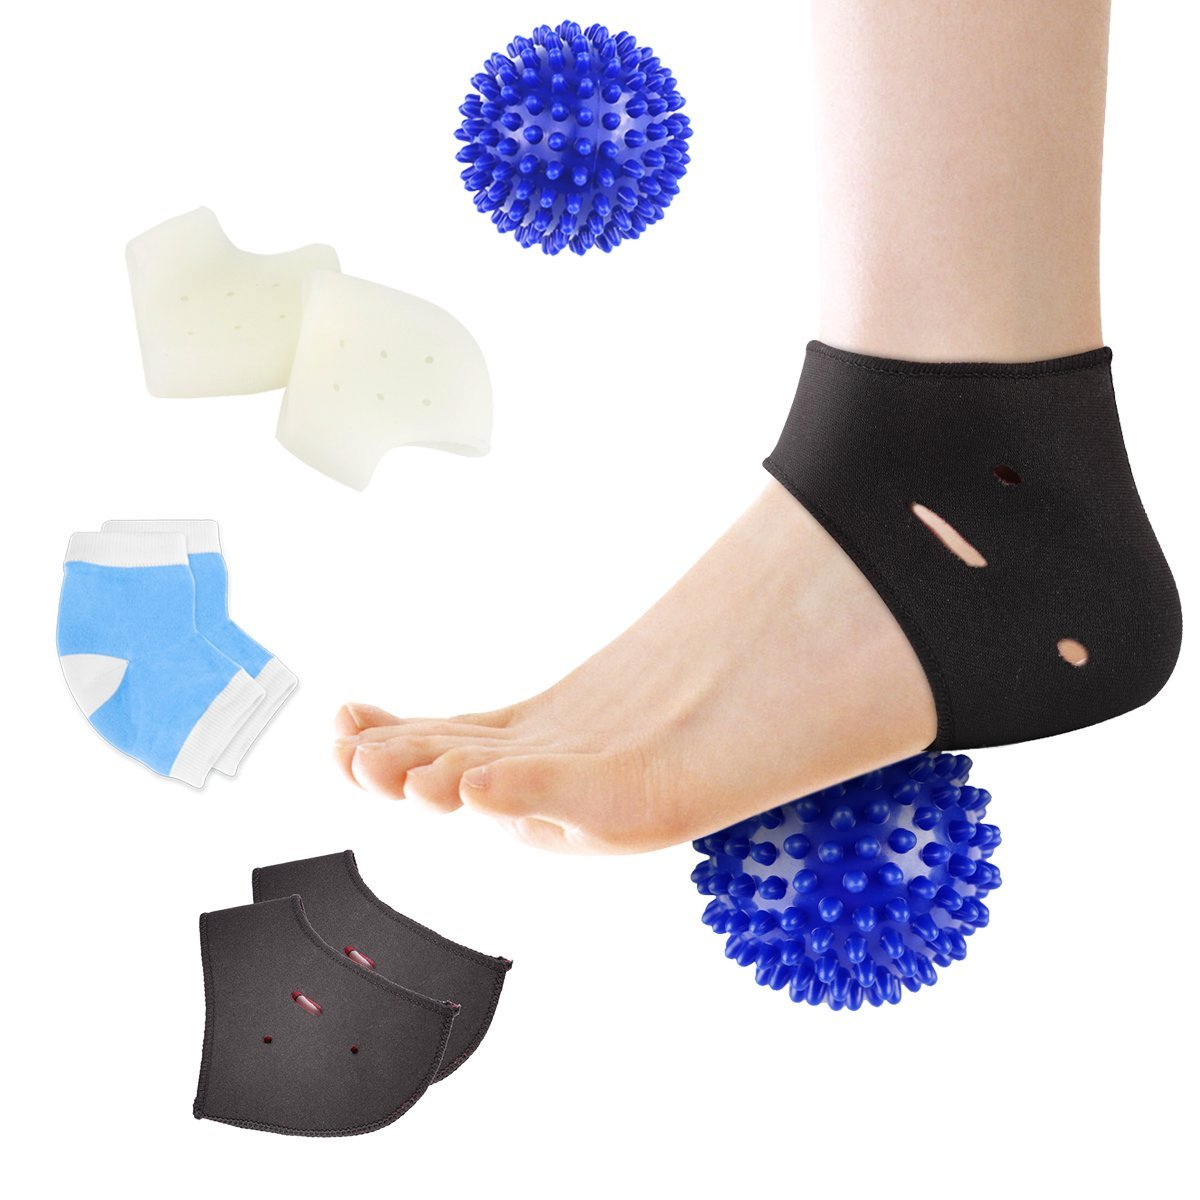 HLYOON H07 Plantar Fasciitis Kit-7PCS Plantar Fasciitis Sleeve Ankle Brace, Heel Support, Socks, Foot Massage Ball for Metatarsal Pain,Foot Arch Support,Relieve Foot Pain